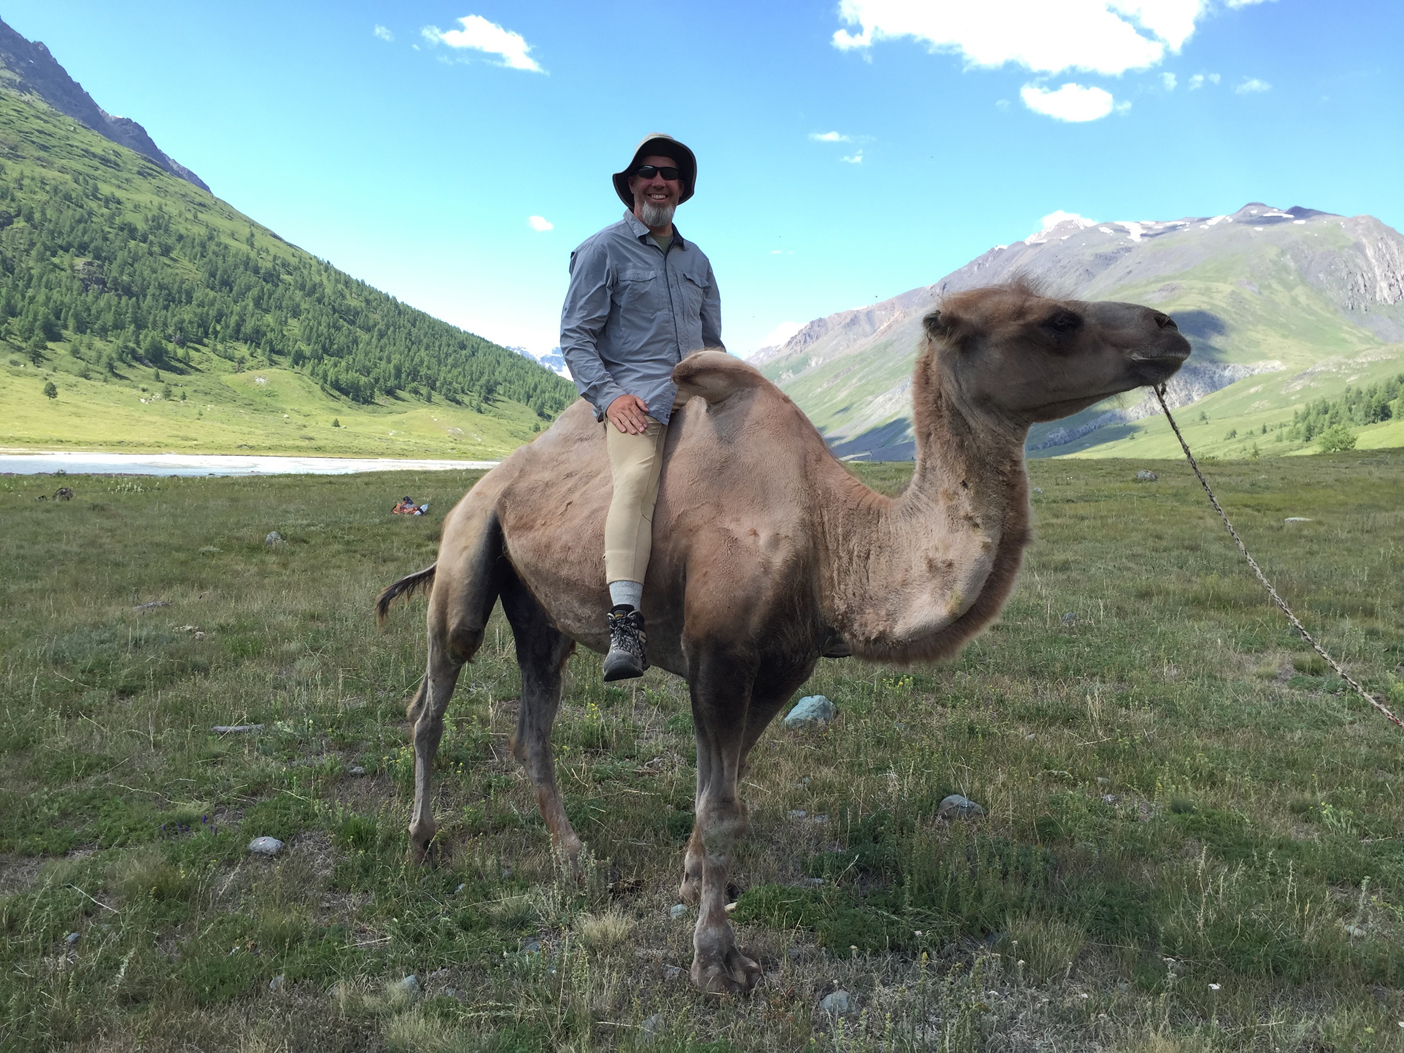 Riding a camel in Mongolia